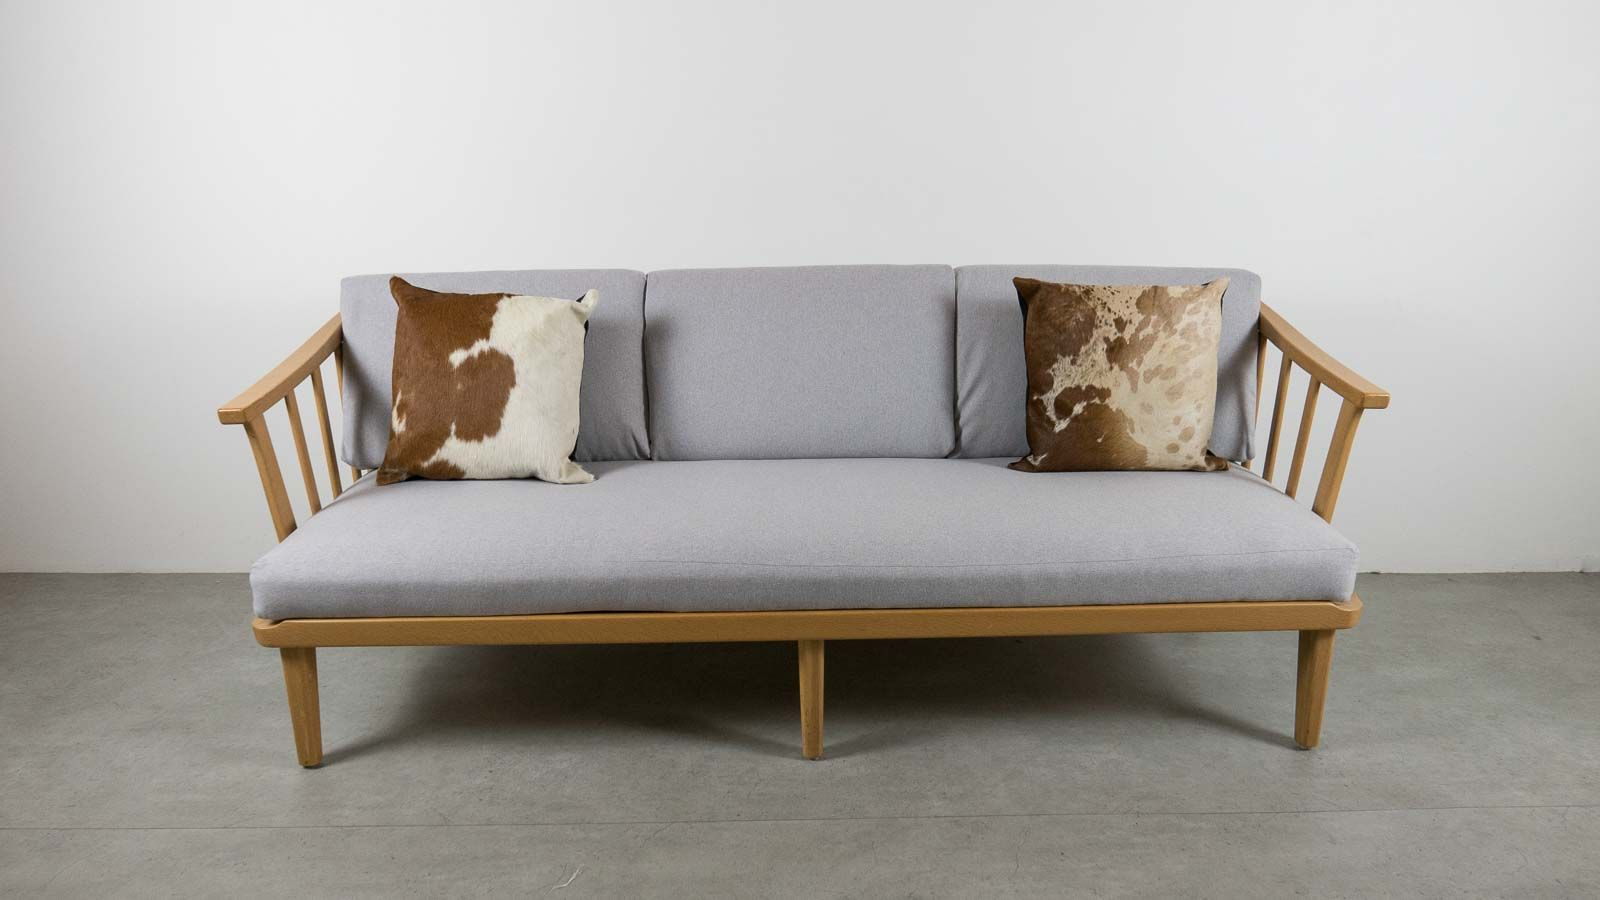 Mid century visings sofa by carl malmsten for ab karl andersson s ner for sale at pamono Carl malmsten sofa